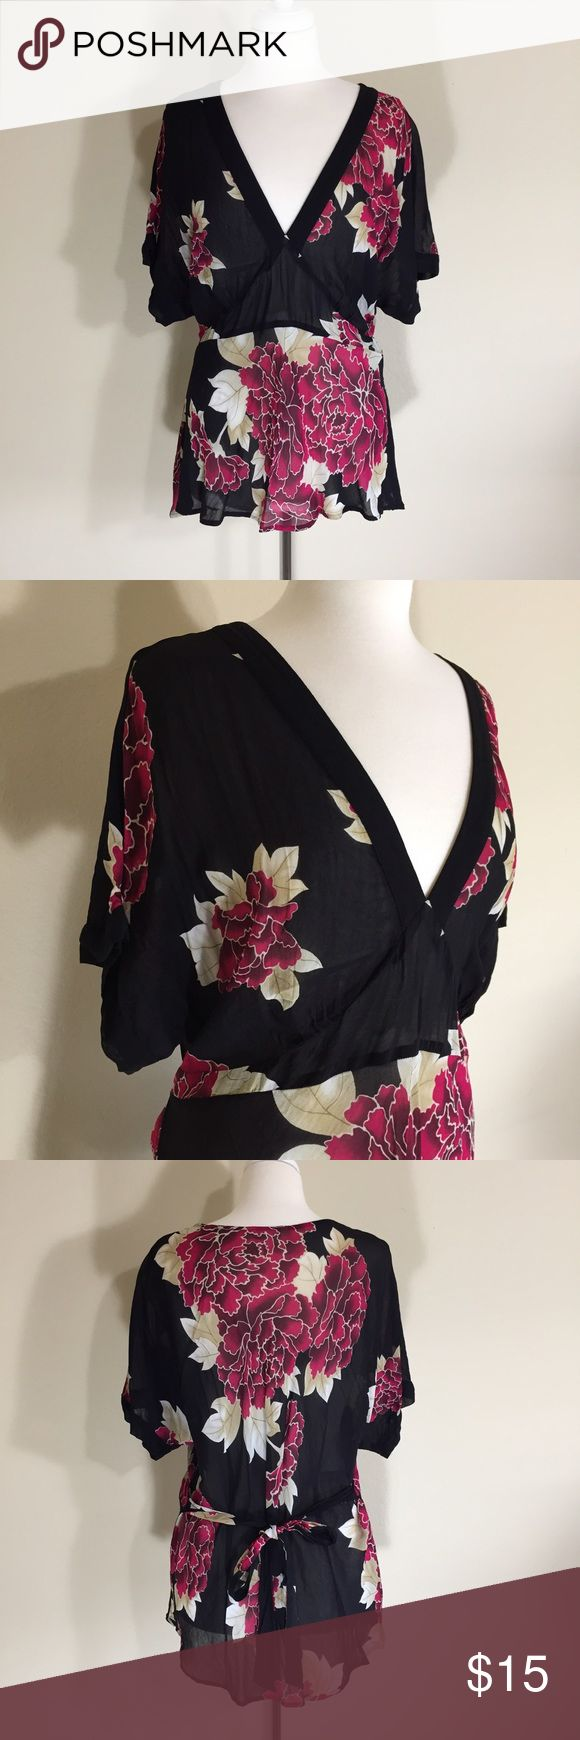 "Marks & Spencer Thin Floral Top Size UK 22 US 18 Great pre-loved condition. I can't read the fabric tag. Material is thin (see through) and it has a somewhat stiff feeling to it. 🍥 Bust - 44"" 🍥 Length - 27"" 🍥 There is a pull on the back shoulder, see picture 4. Marks & Spencer Tops Blouses"